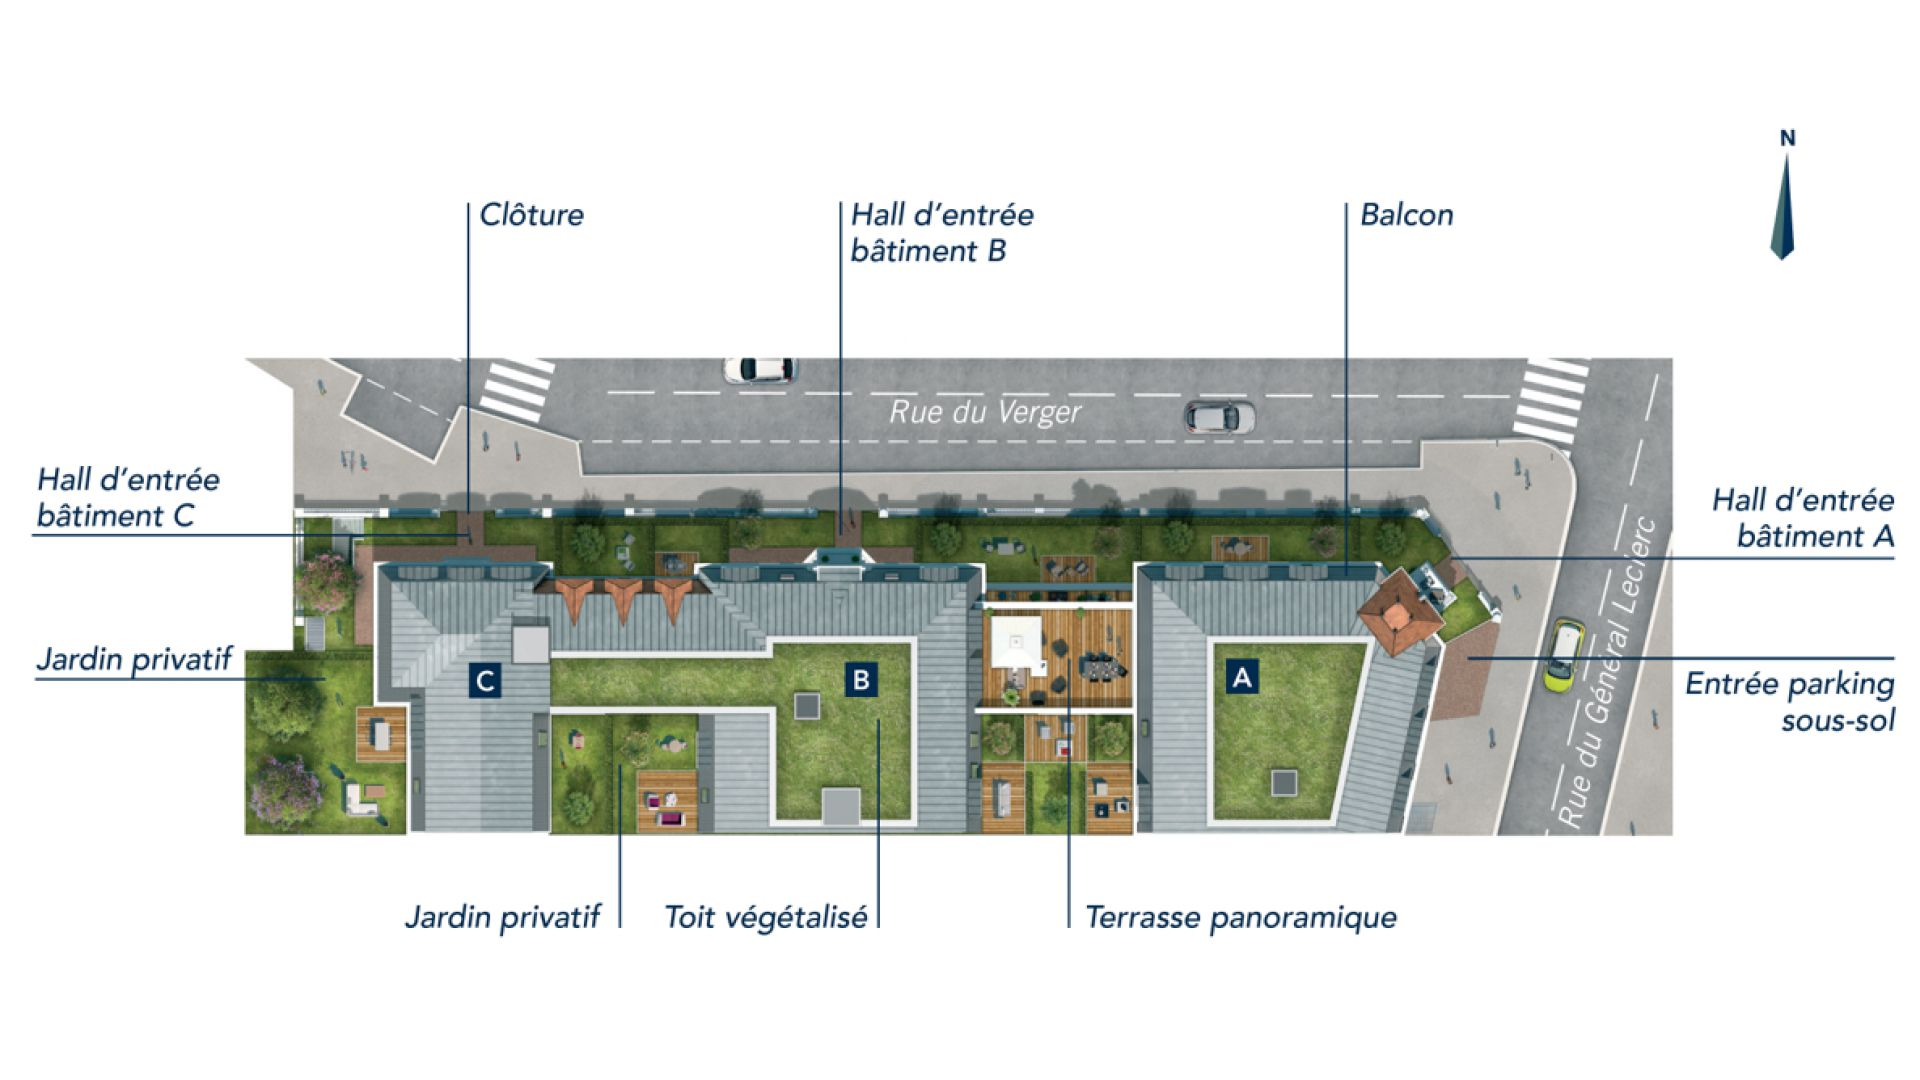 GreenCity immobilier - achat appartement neuf - Villiers Sur Marne - 94350 - Résidence Grand Angle - plan de masse